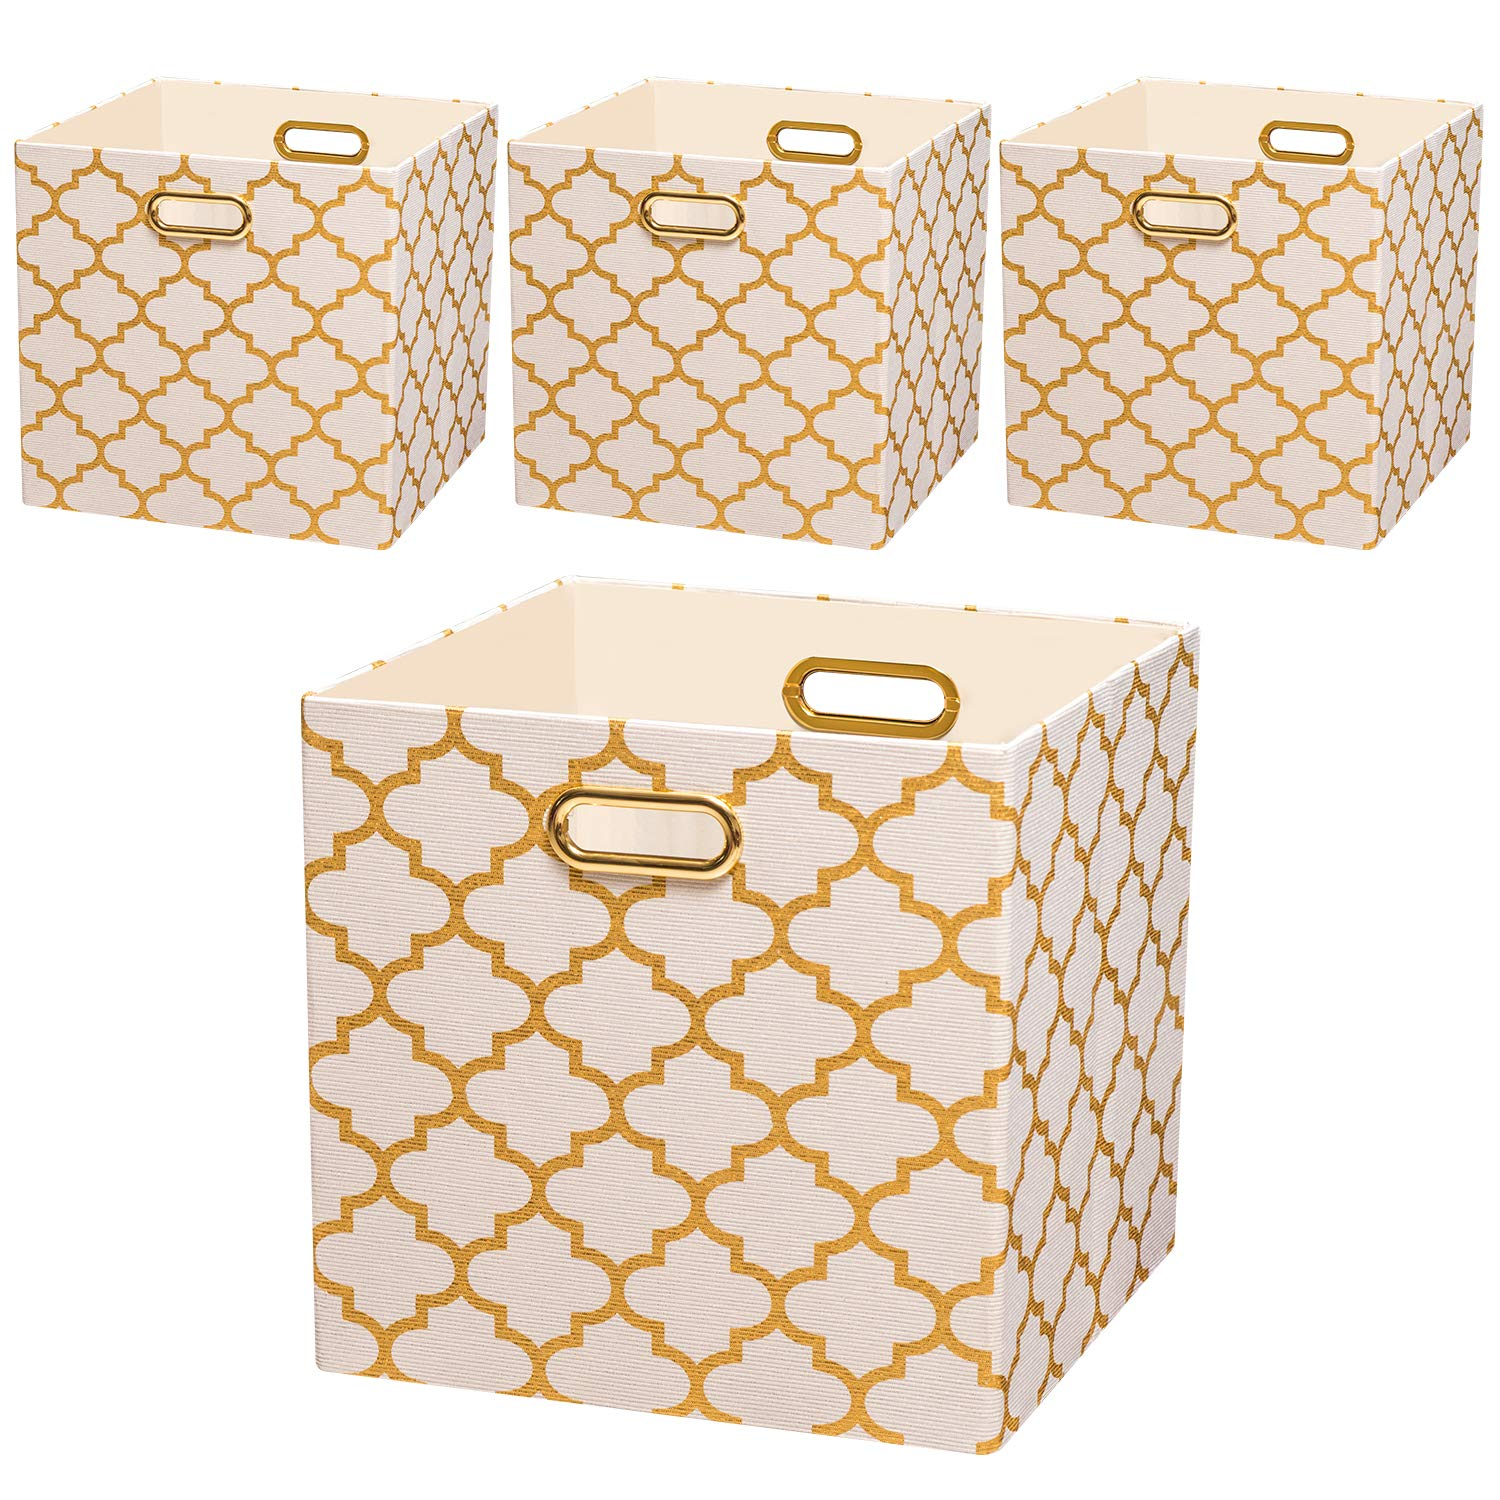 Posprica Storage Bins, 13×13 Storage Cubes, Collapsible Baskets Boxes Containers Fabric Drawers (4pcs, White Lantern Patterned) by Posprica